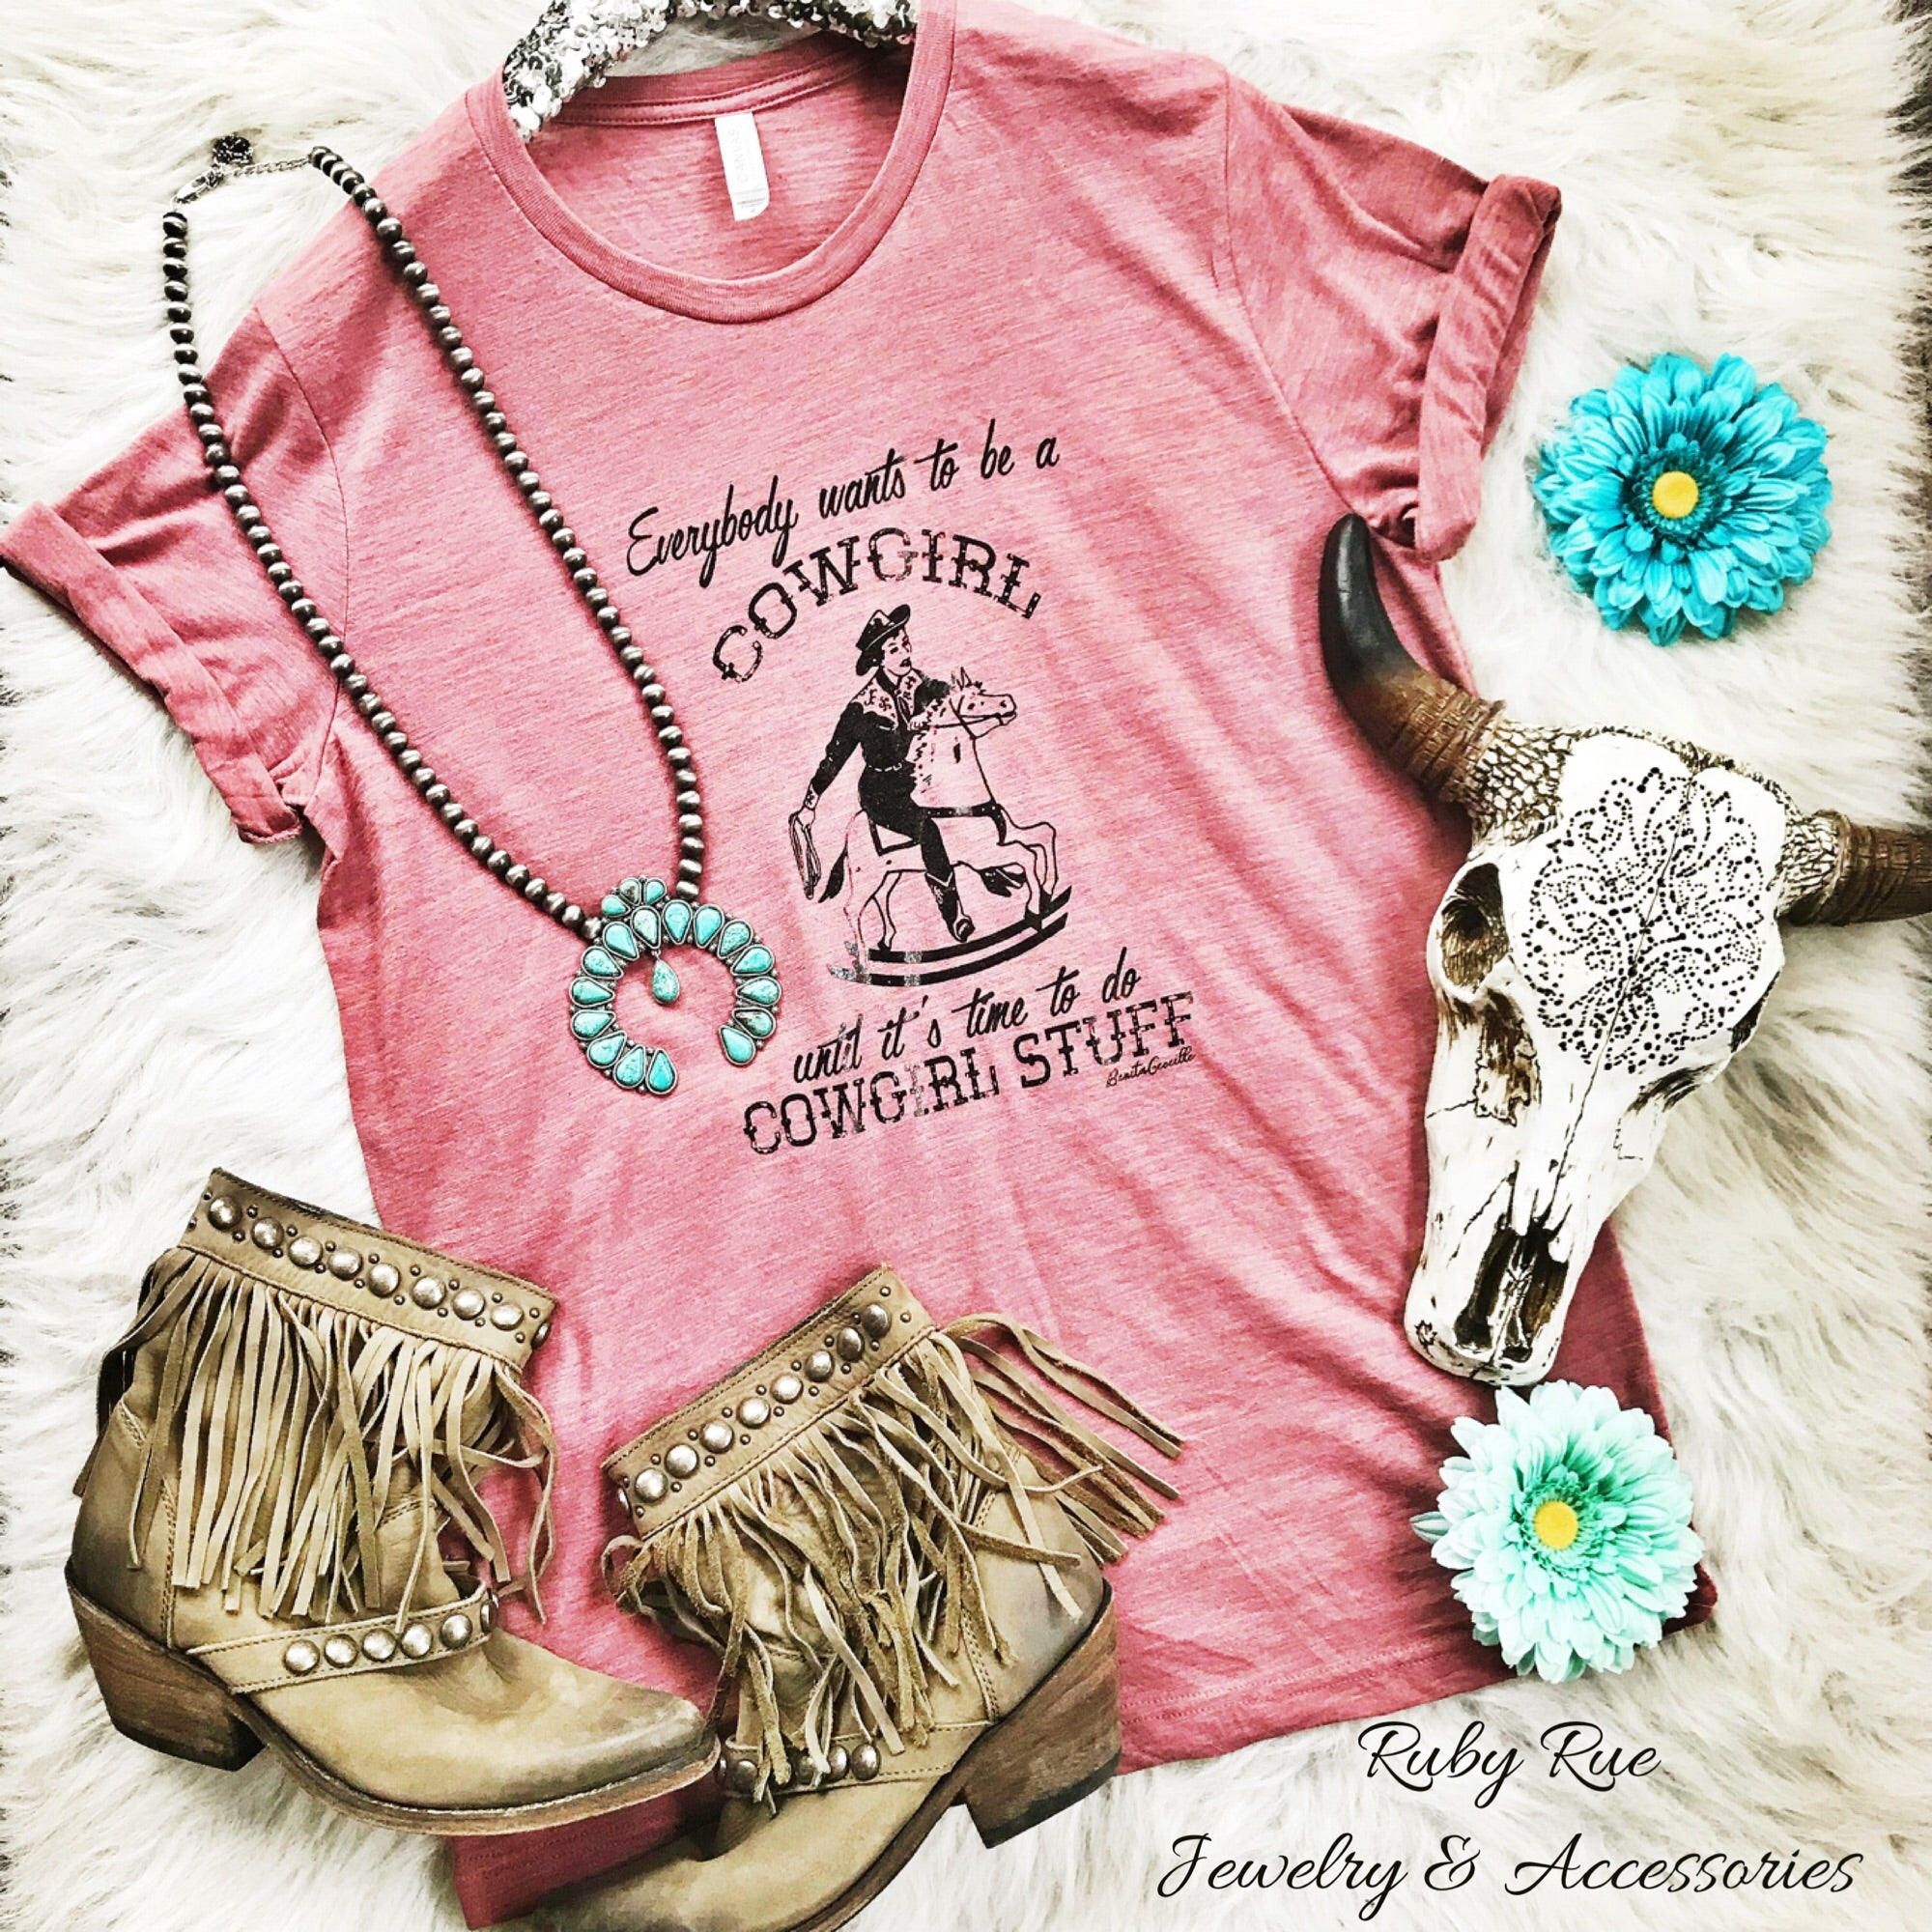 Cowgirl Stuff Tee - Ruby Rue Jewelry & Accessories